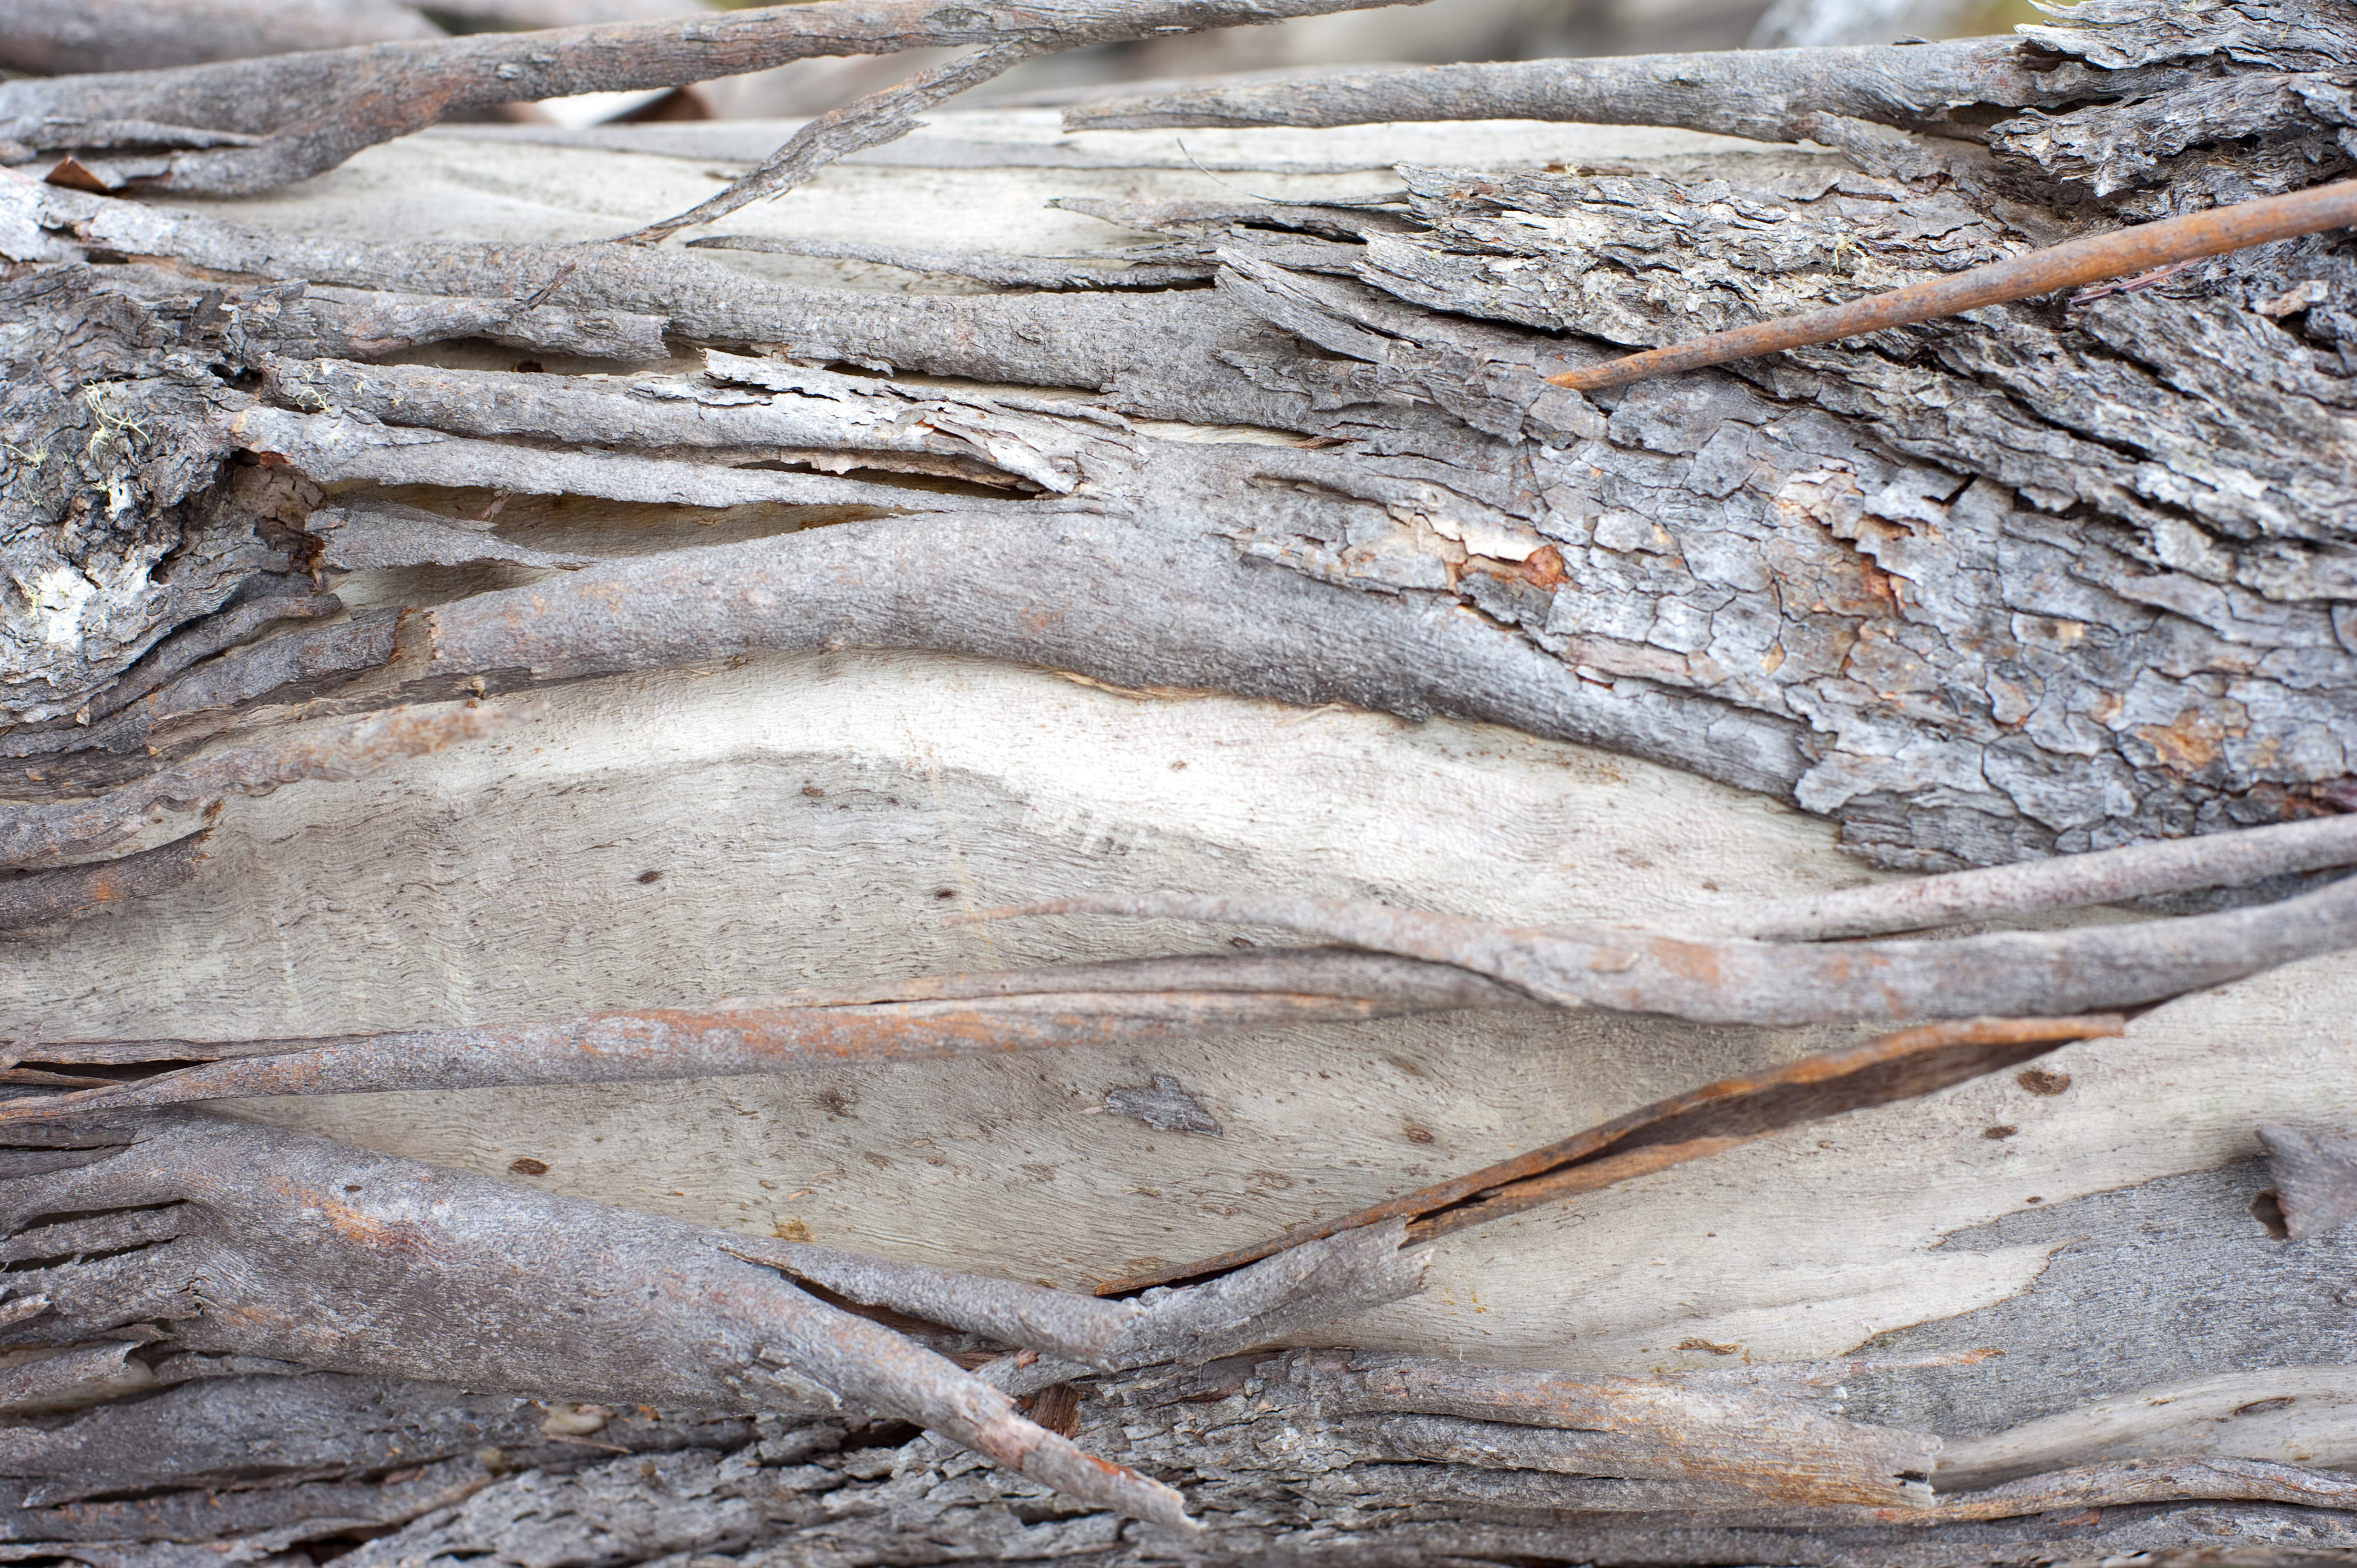 Old dried bark on a tree trunk showing where the fronds have become detached and fallen, closeup background texture